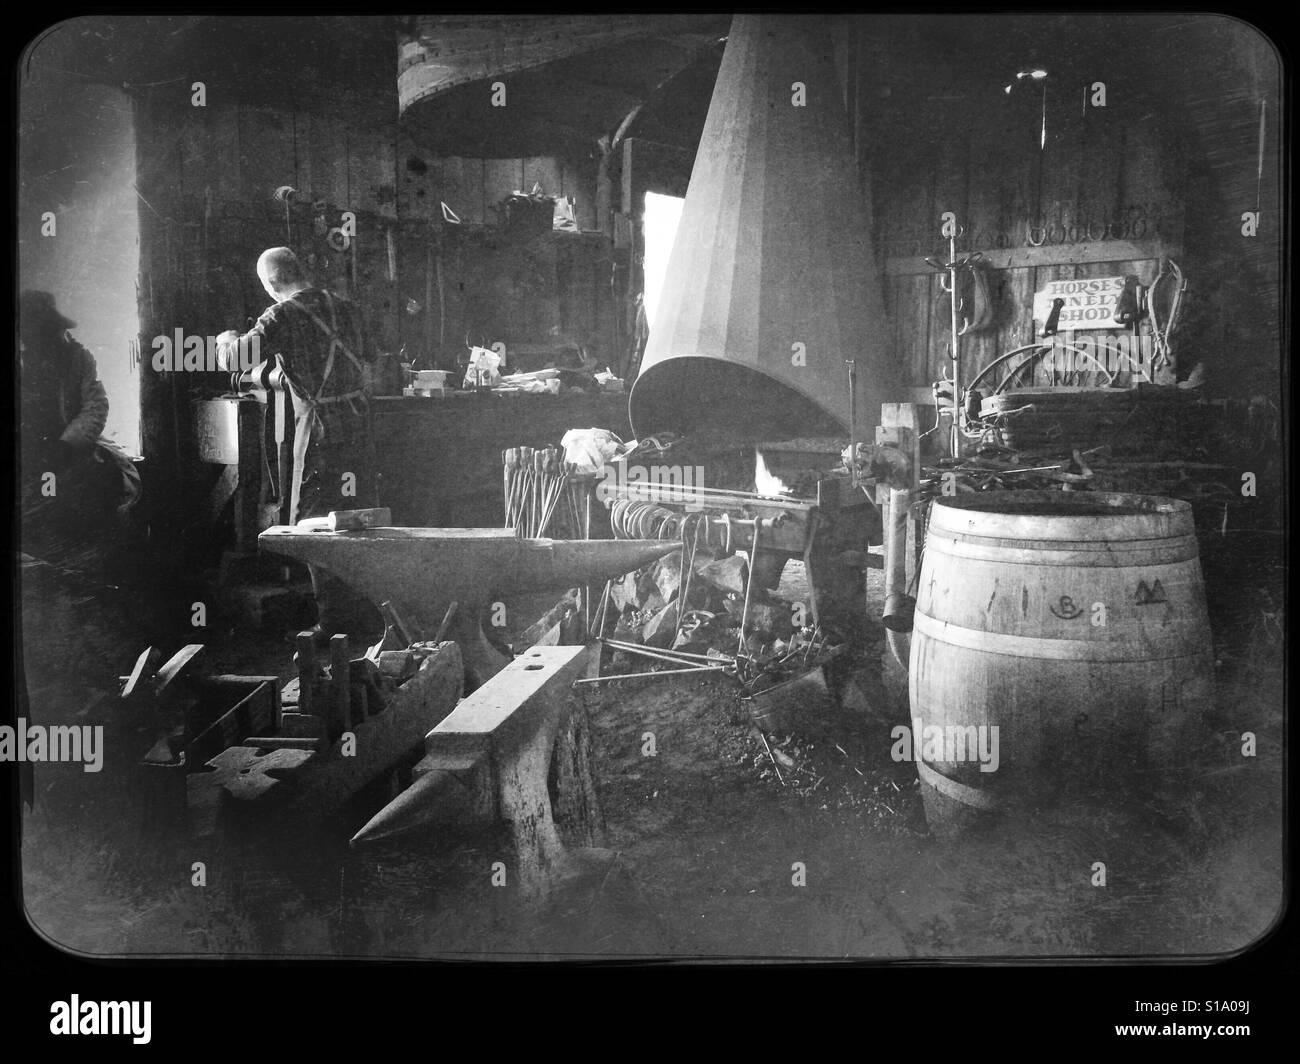 A blacksmith working in his shop on Main Street. Columbia State Historic Park, Columbia, Tuolumne County,  California, - Stock Image